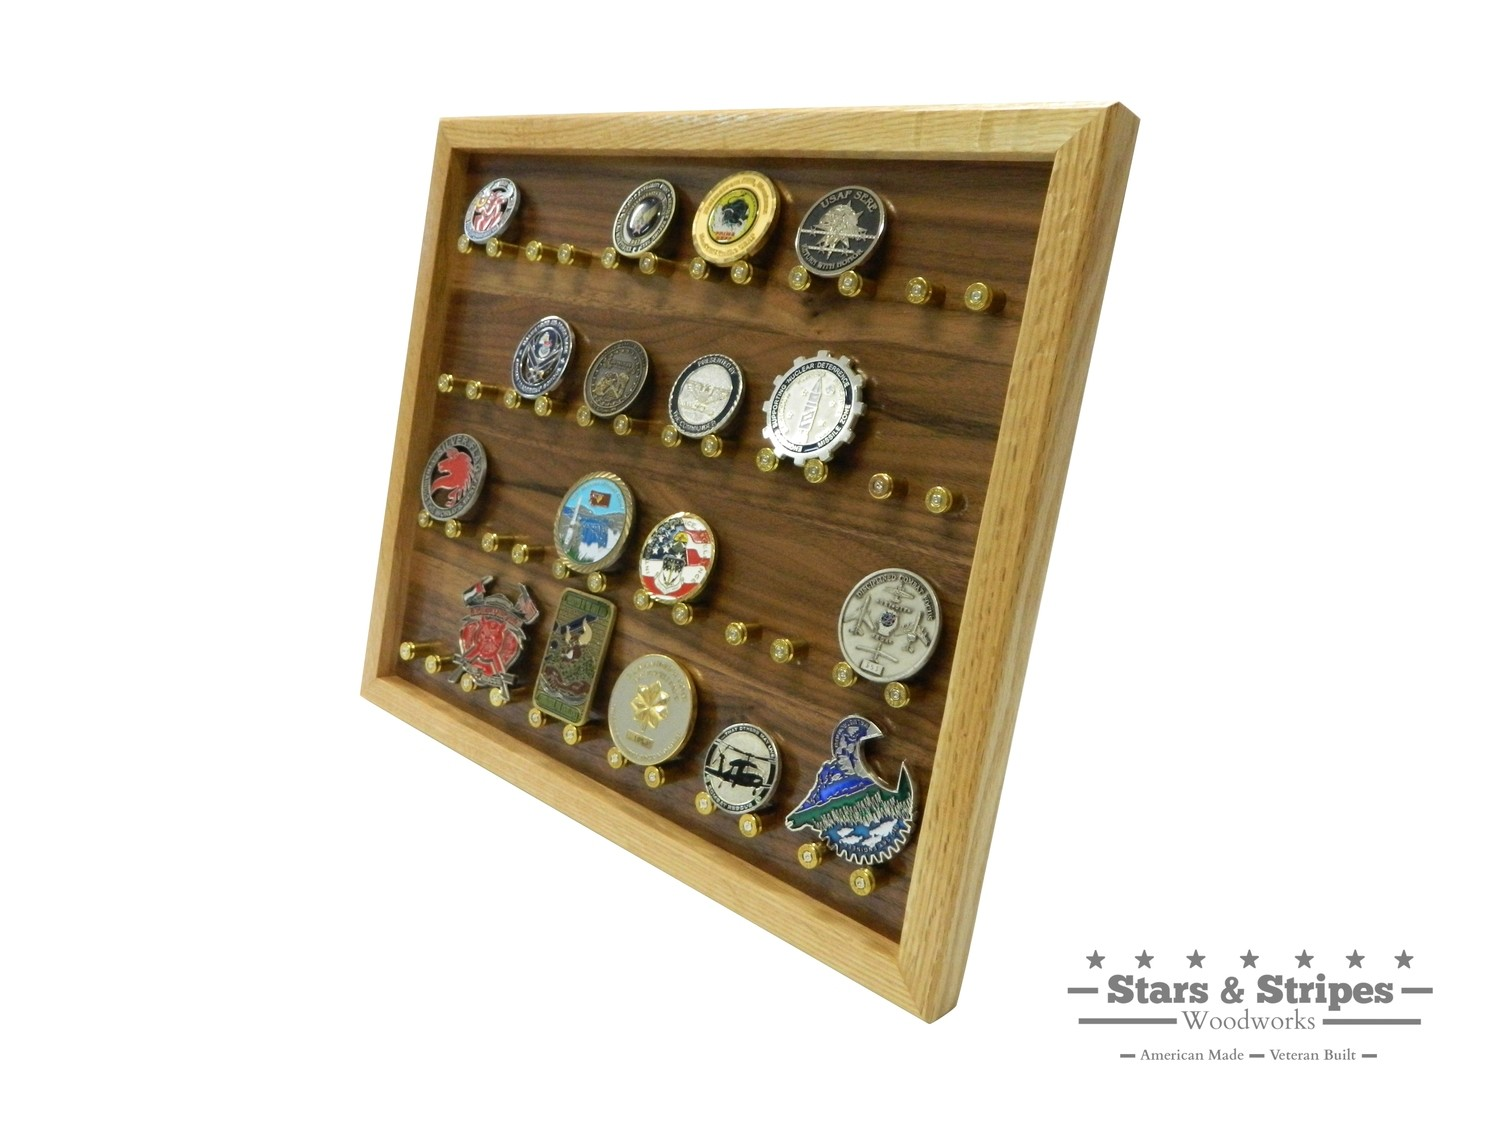 The ORIGINAL 24 Challenge Coin Rack Display with 9mm Brass Bullet Casings